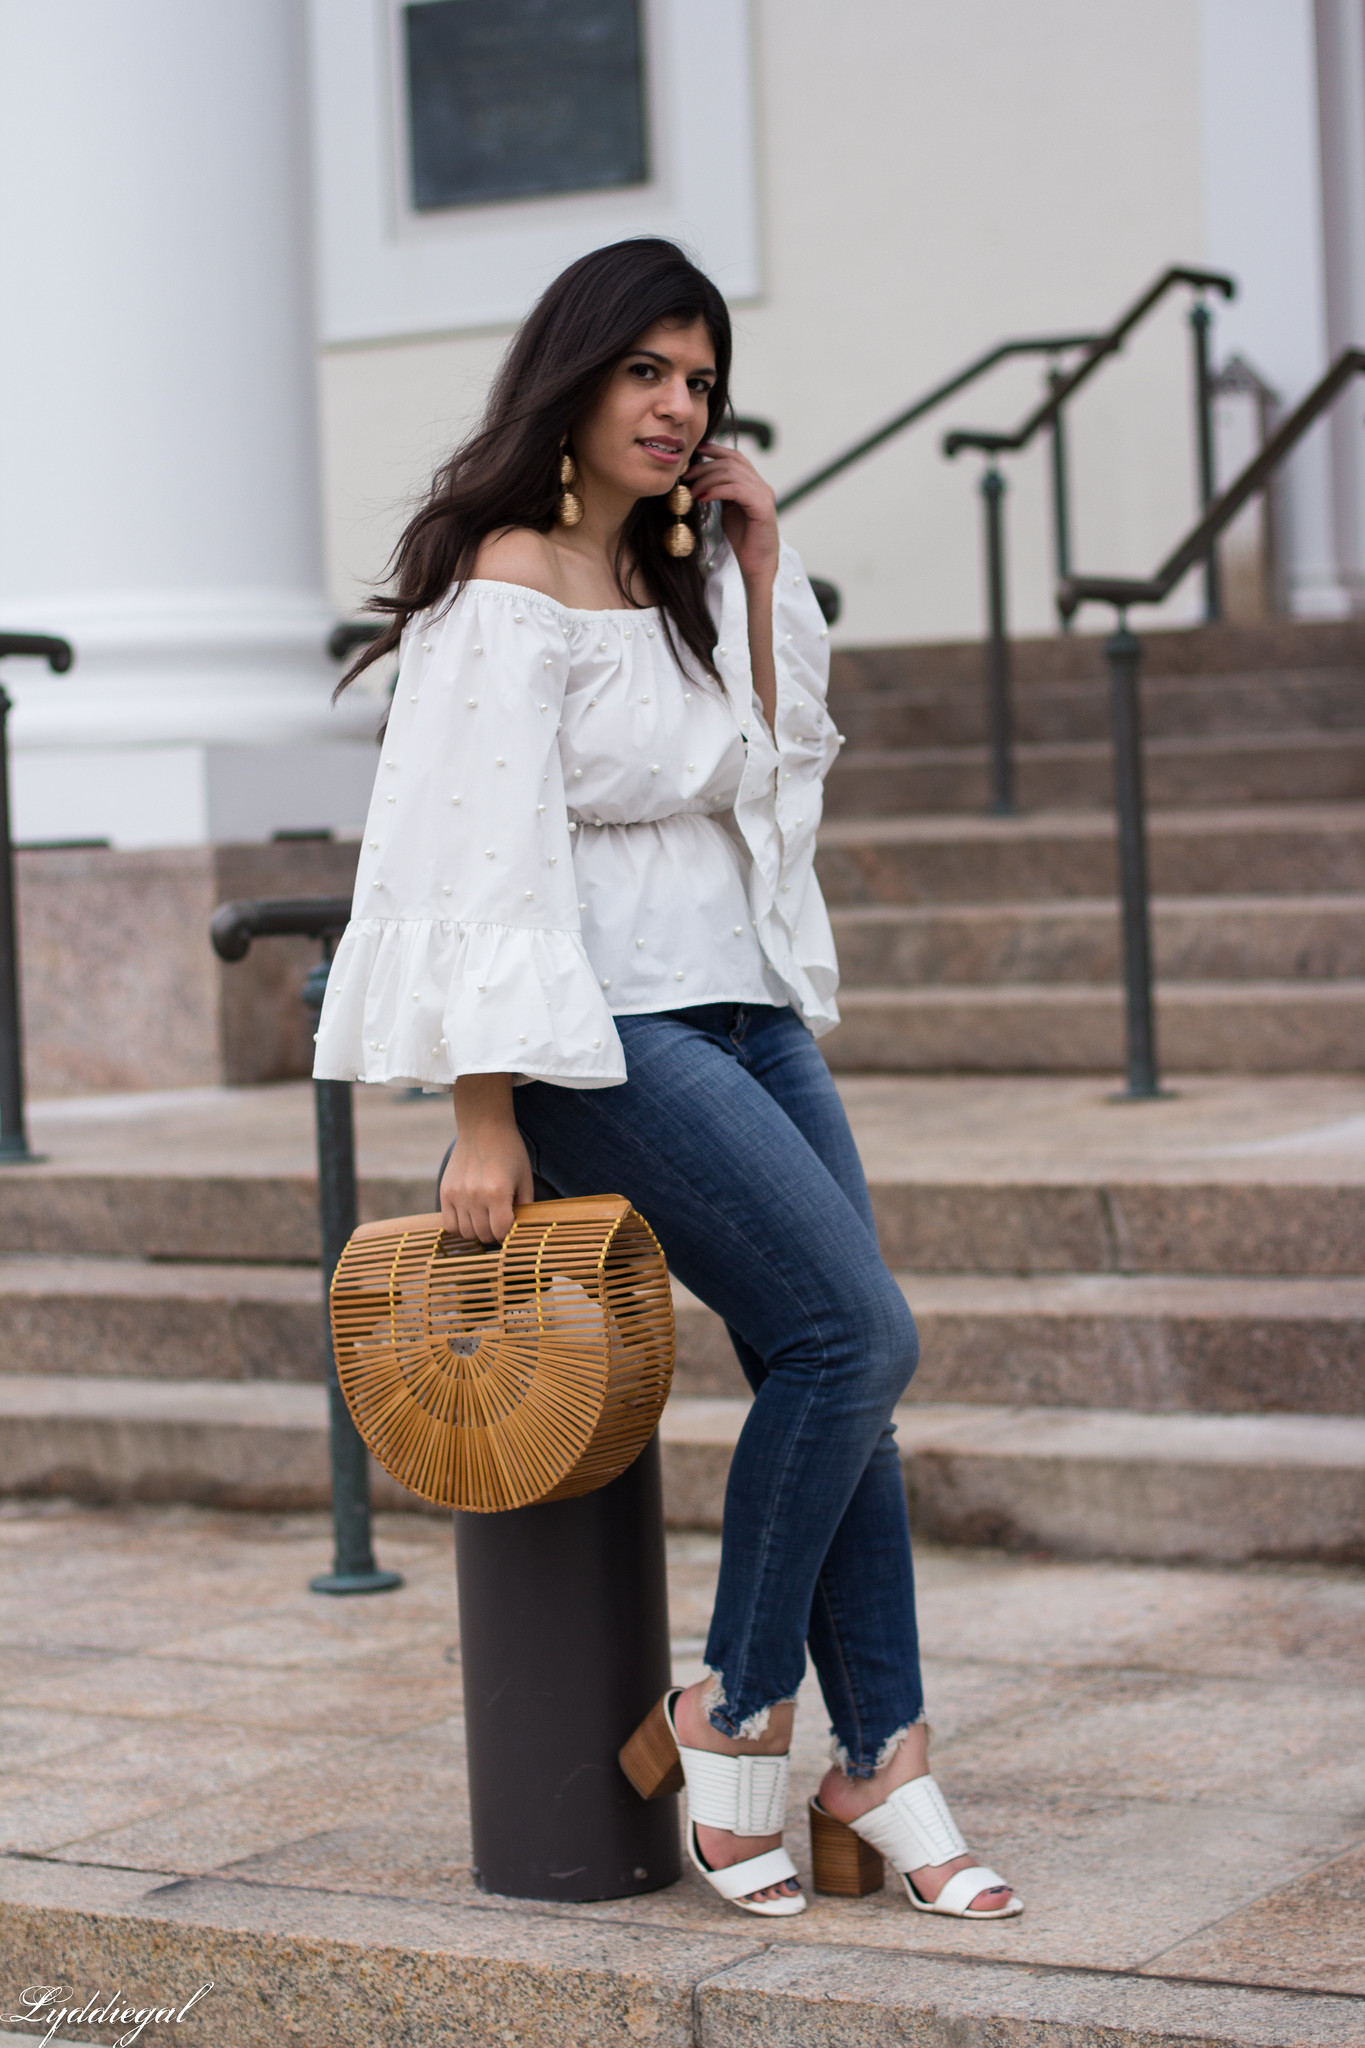 off the shoulder pearl embelleshed blouse, distressed denim, bamboo purse-8.jpg